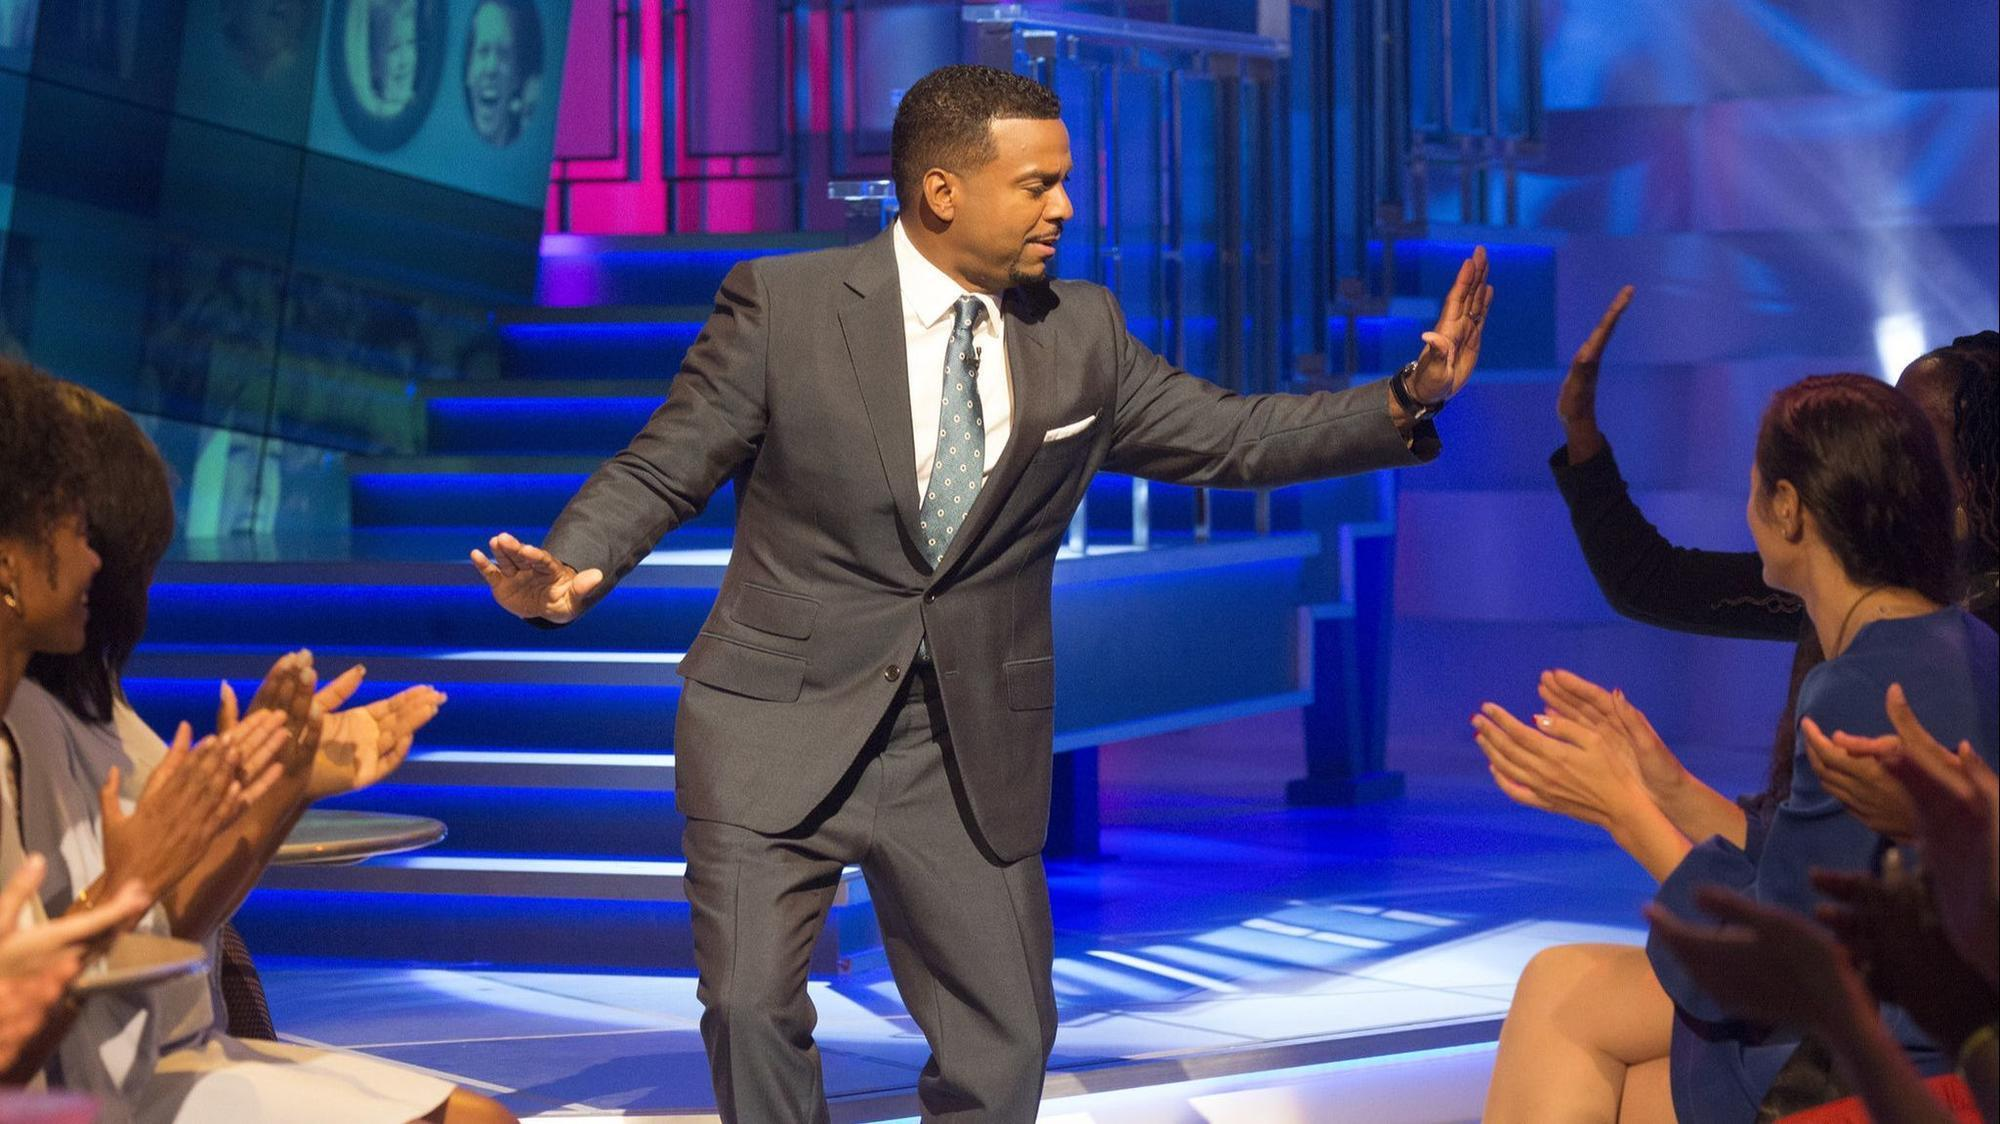 Central Florida Lincoln >> 'Funniest Videos': 2 Central Florida families compete for ...